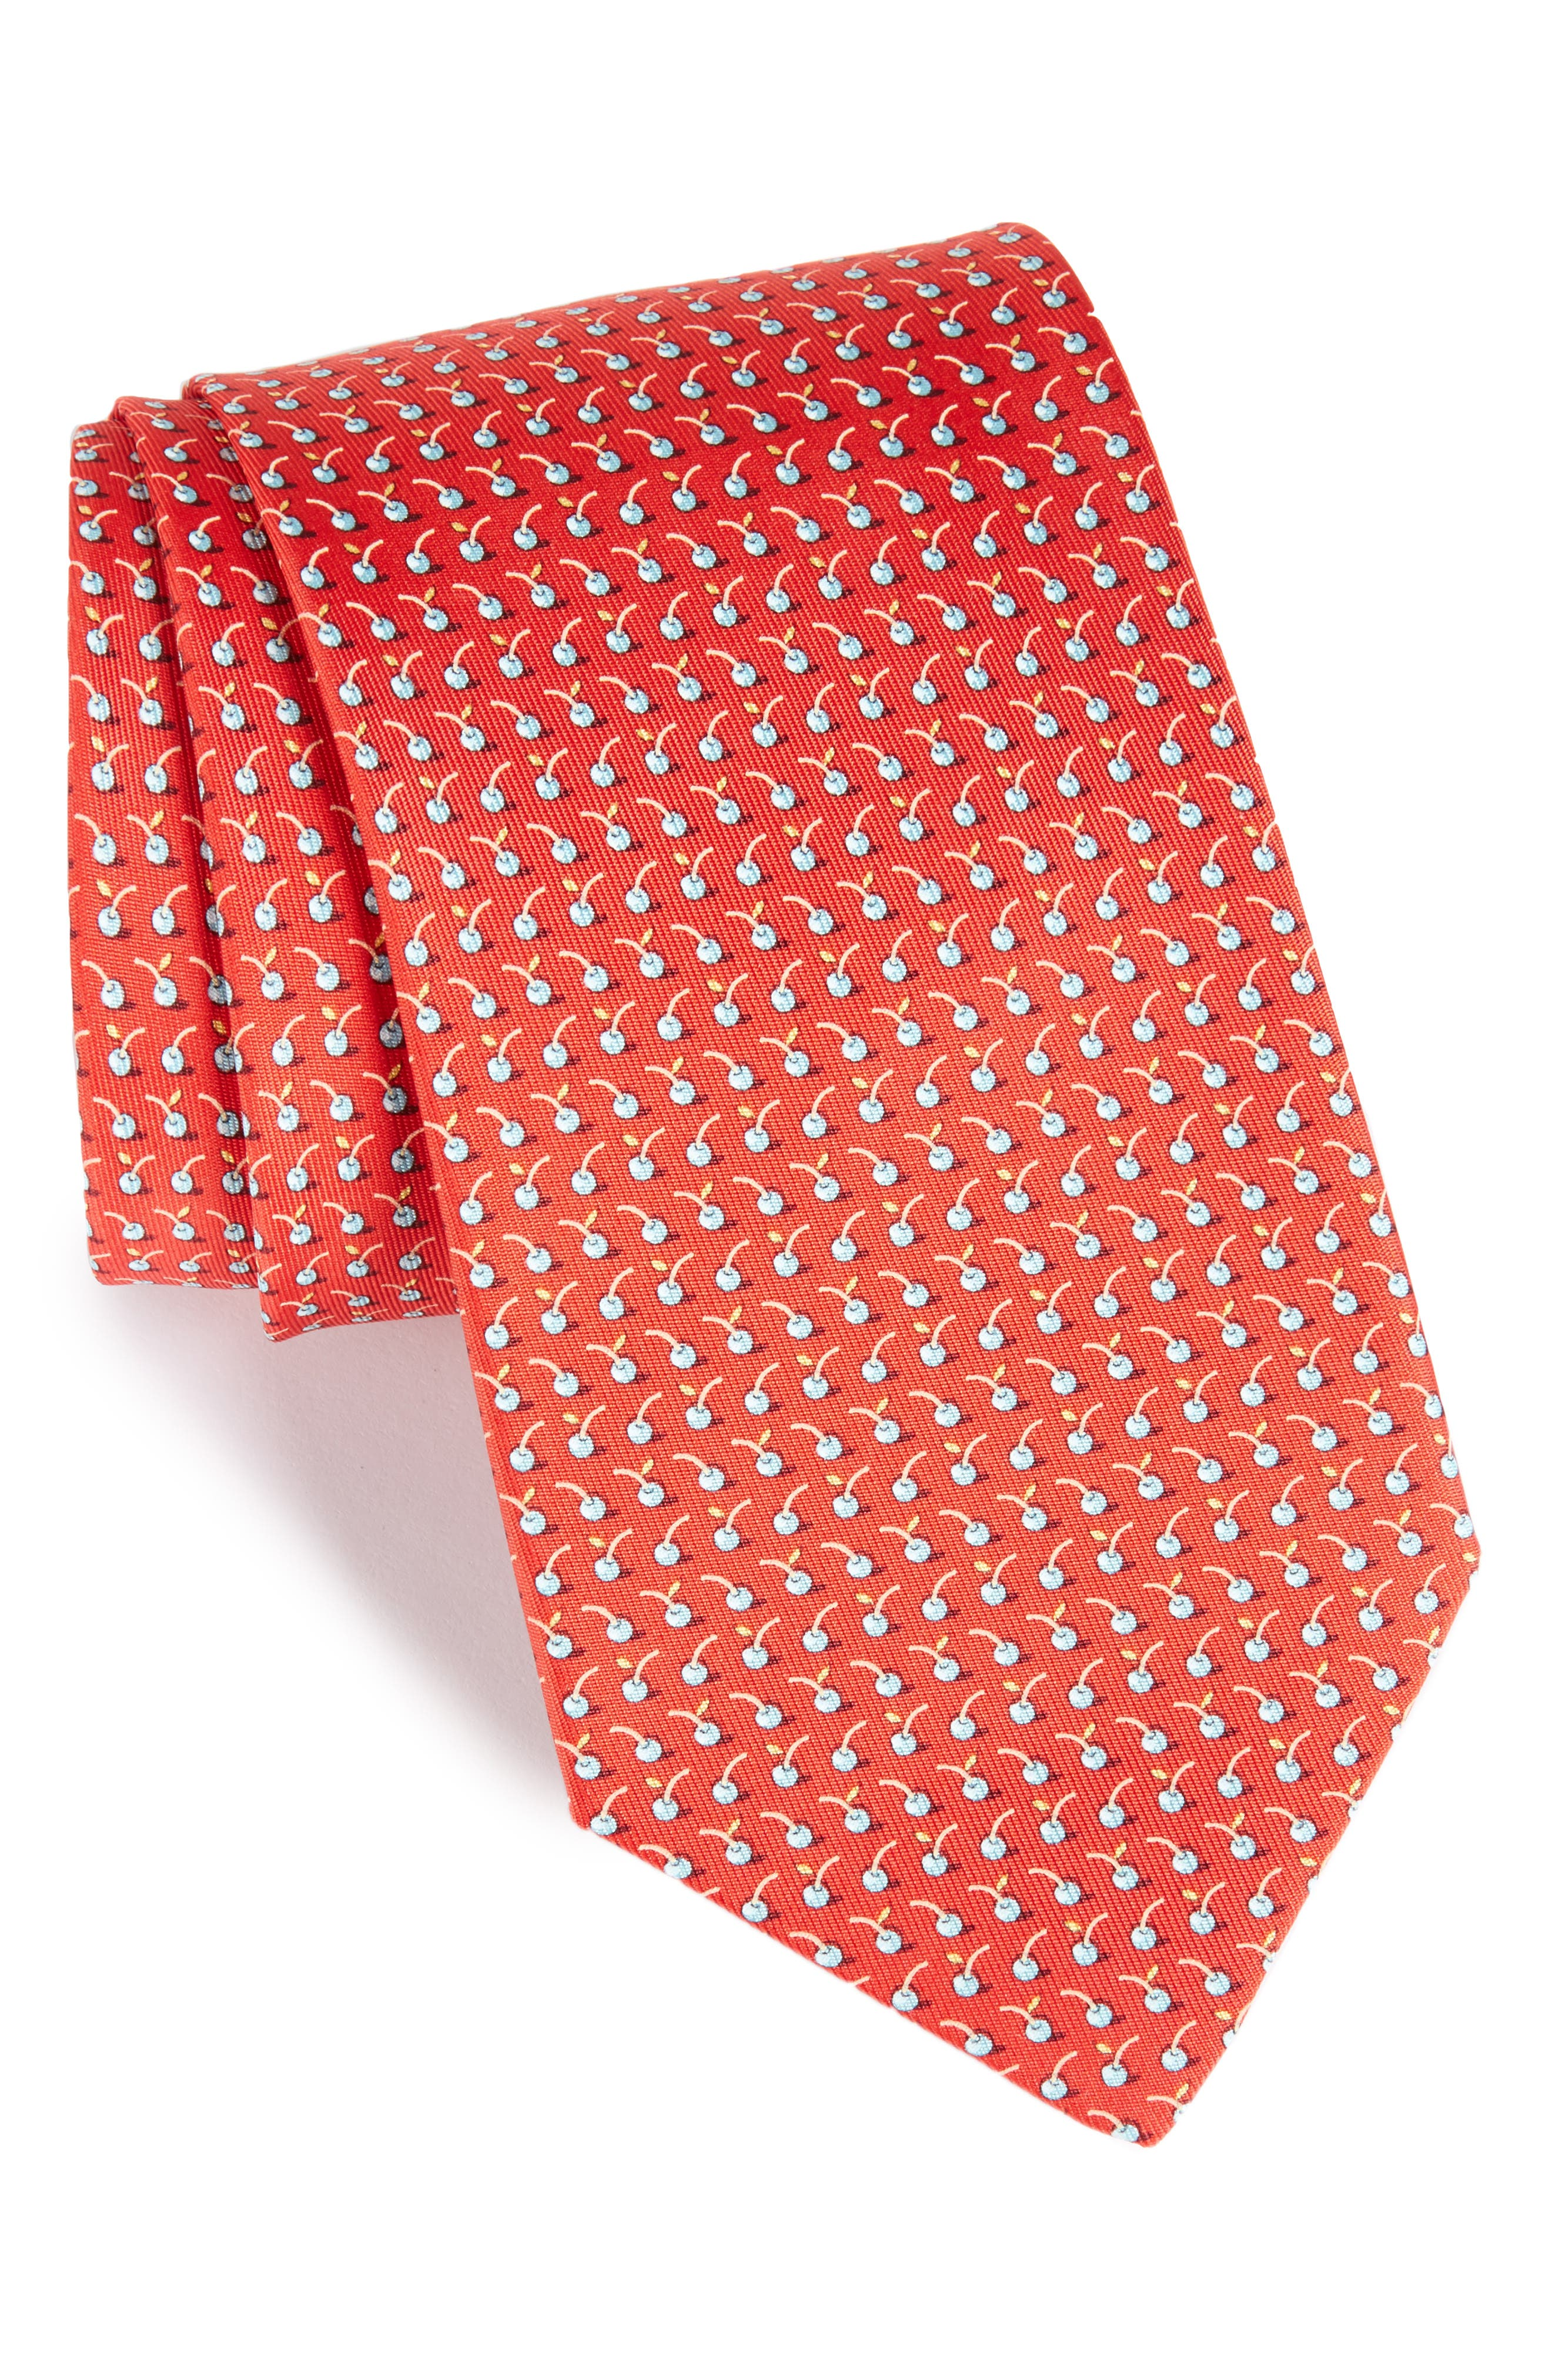 Fruit Silk Tie,                             Main thumbnail 1, color,                             Red